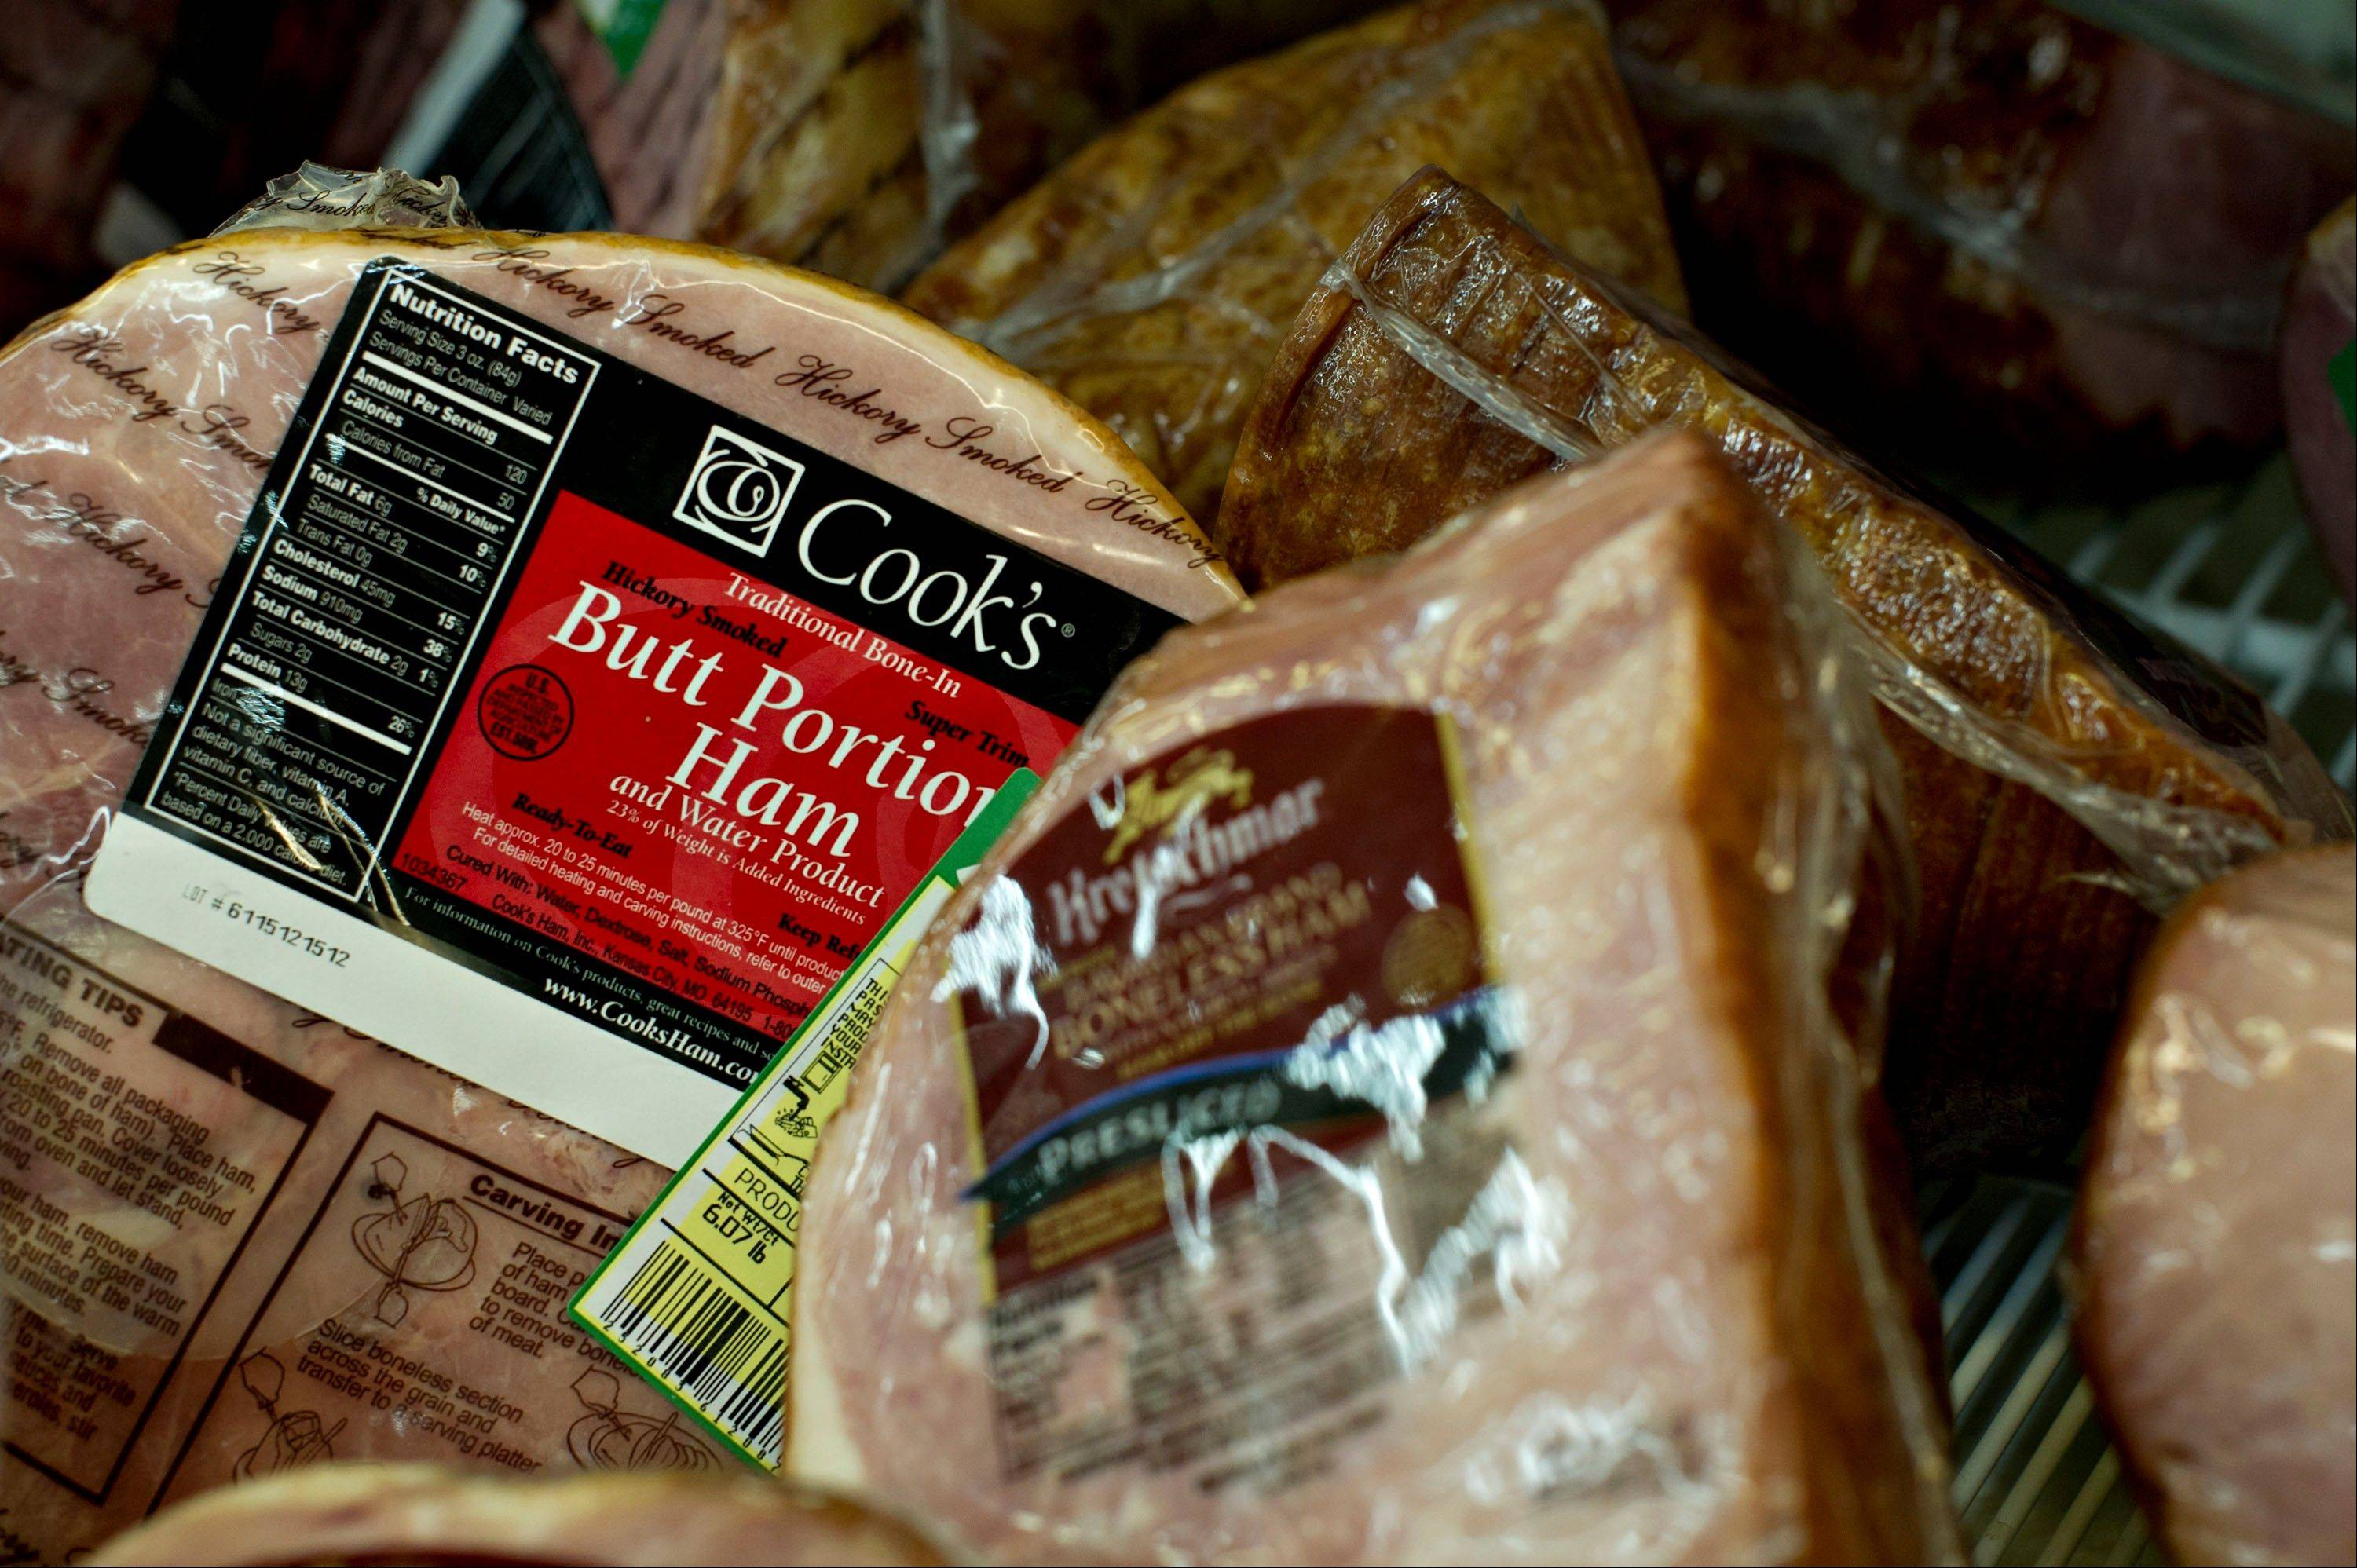 Smithfield Foods Inc. Cook�s brand ham sits on display at a supermarket in Princeton, Illinois. Chinese meat processor Shuanghui International Holdings Ltd. has agreed to buy Smithfield Foods for approximately $4.72 billion.